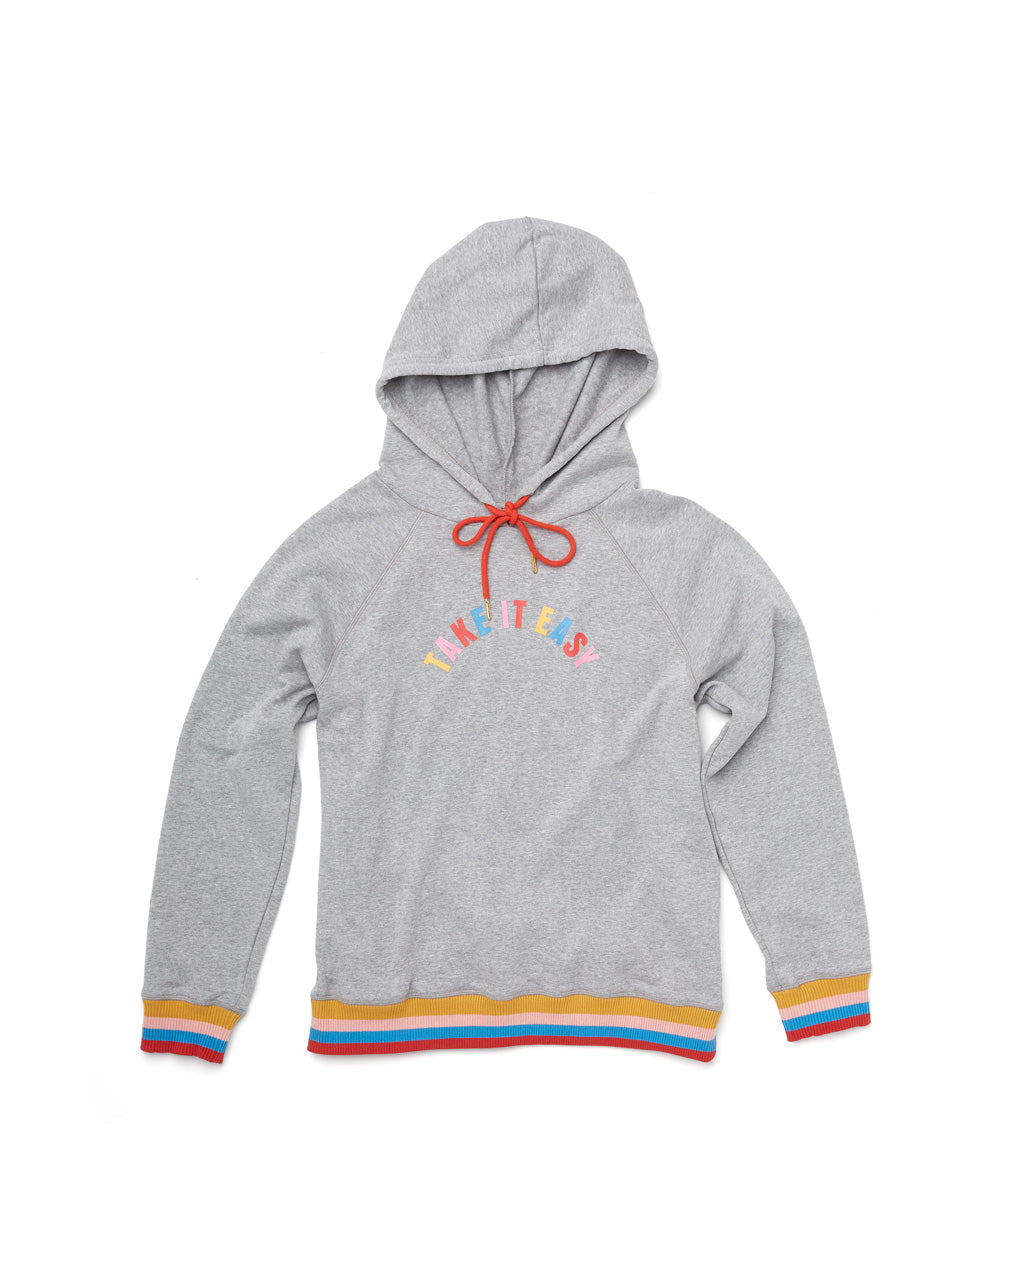 "Long sleeve sweatshirt with rainbow striped hem, cuffs, and graphic ""take it easy"" in the center."